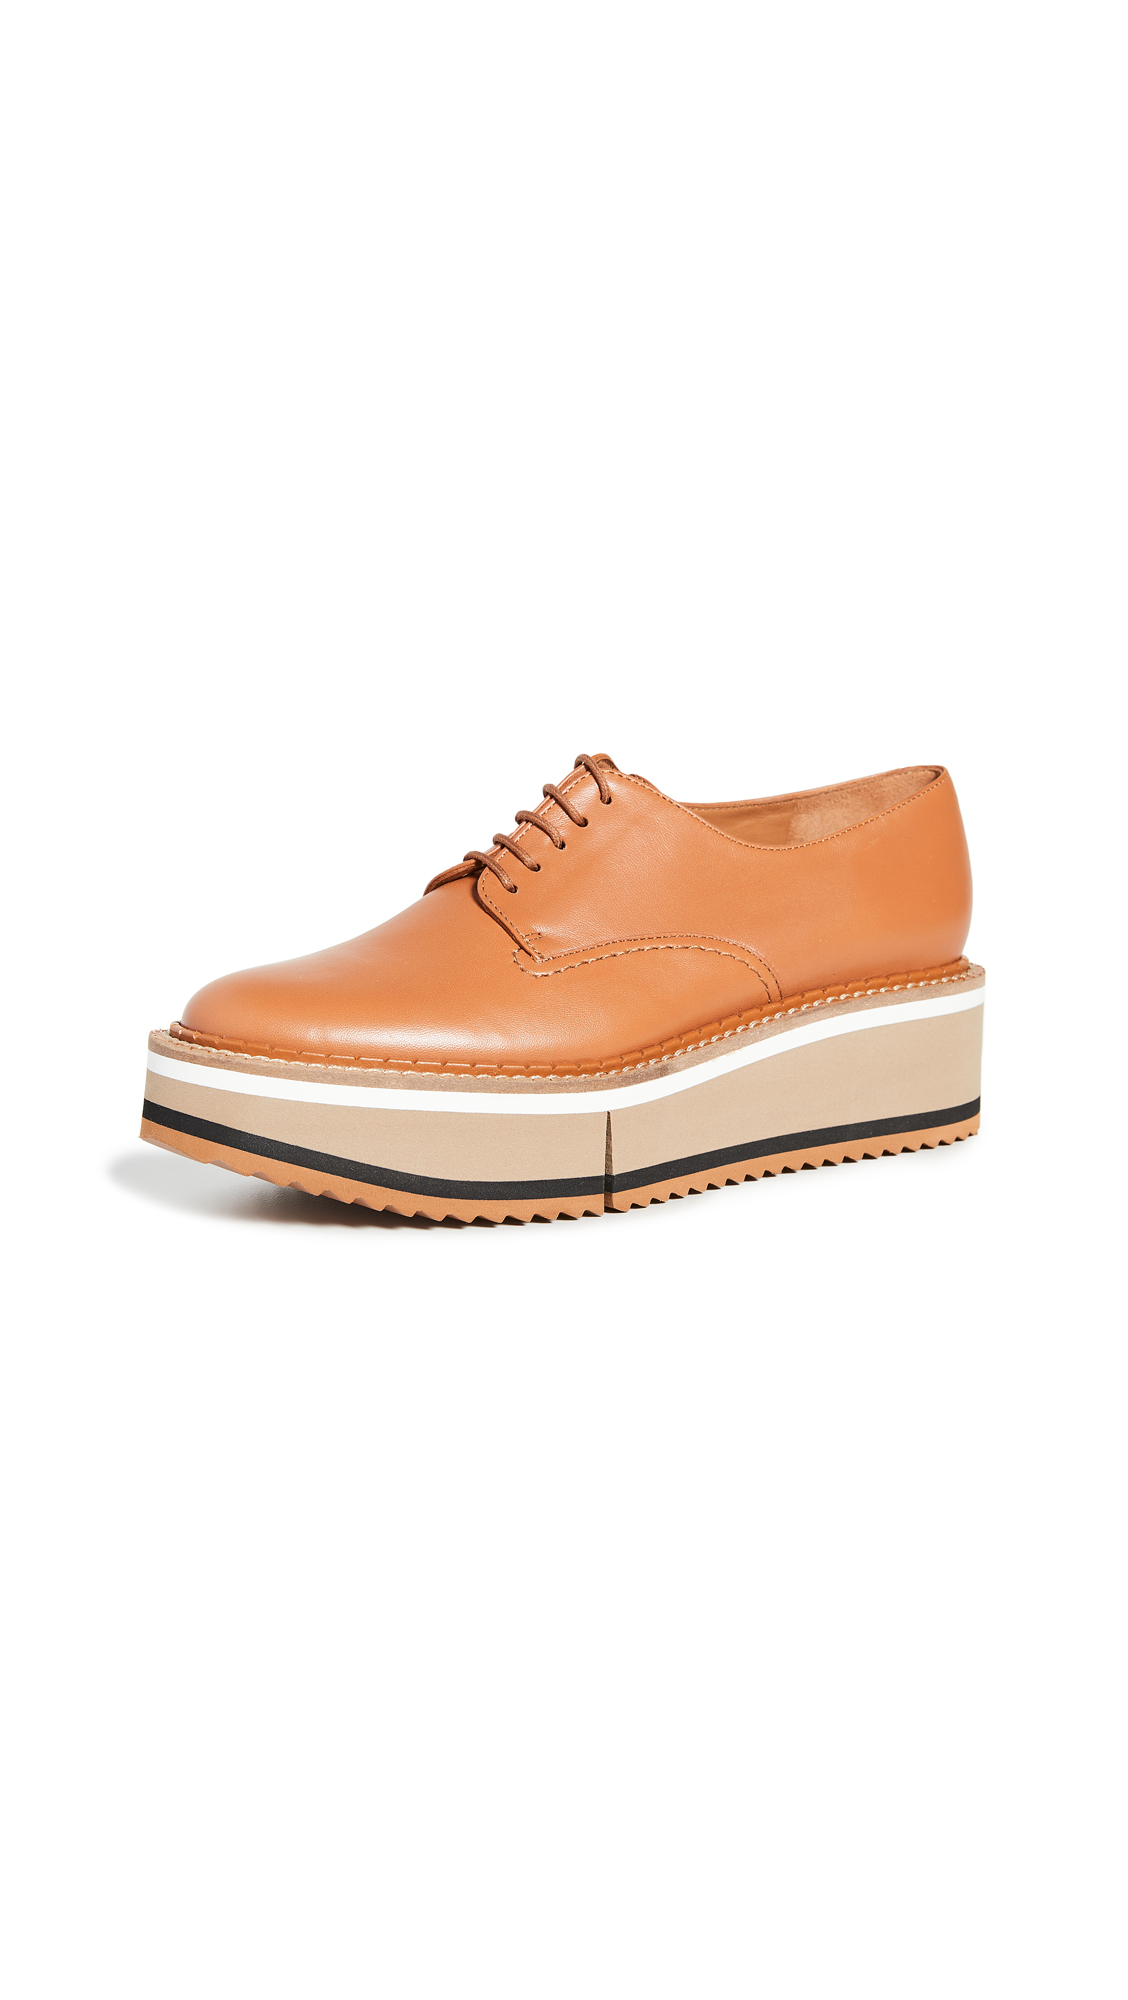 Buy Clergerie Berlin 3 Oxfords online, shop Clergerie